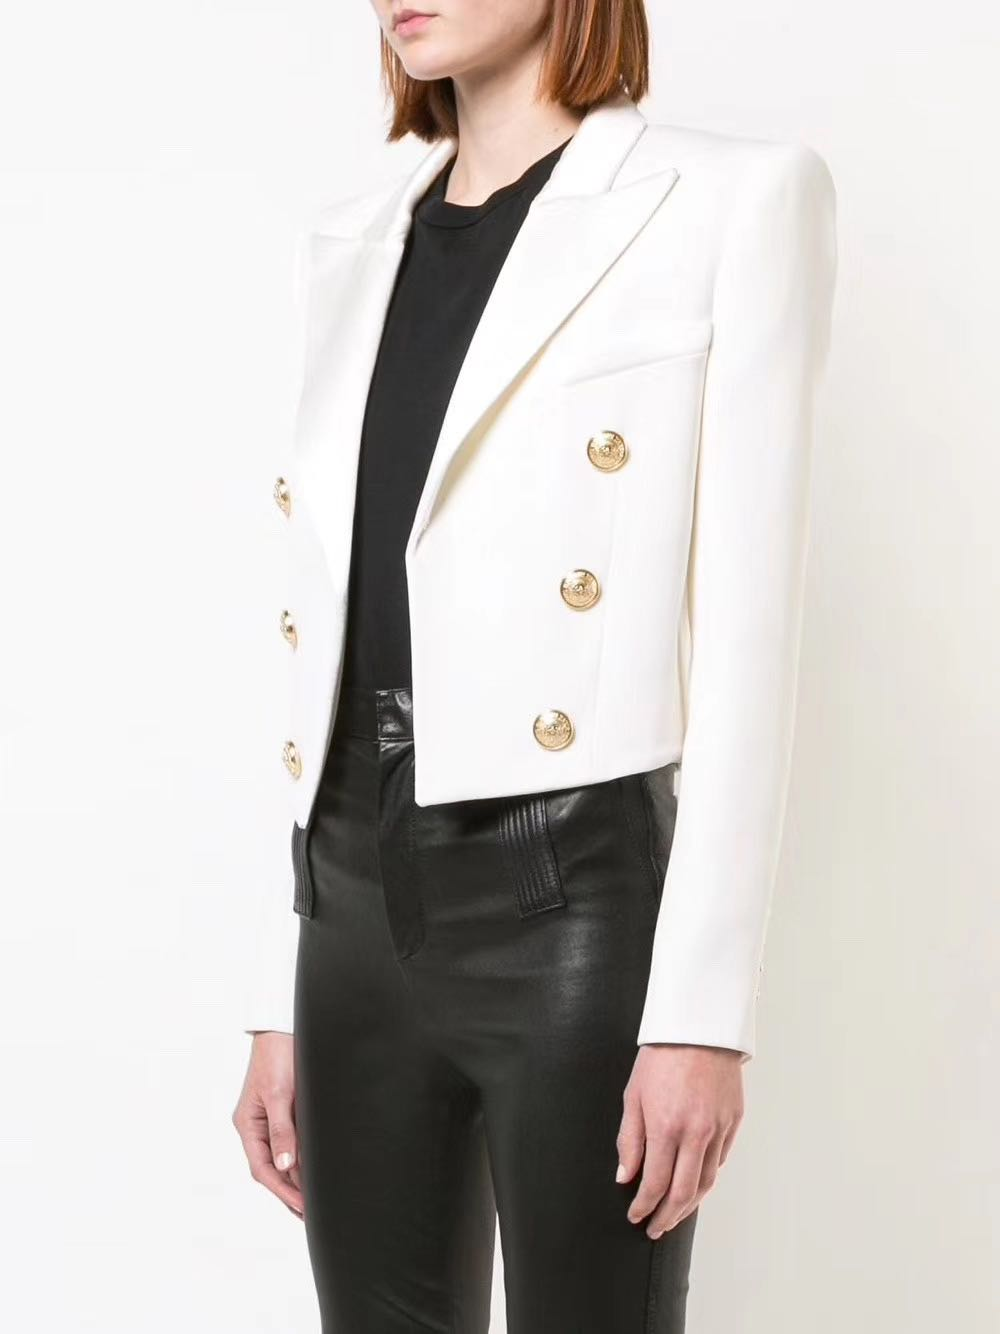 Classic Black White Short Cropped Blazer Gold Double Breasted Buttons Long Sleeved HIGH QUALITY WOMAN